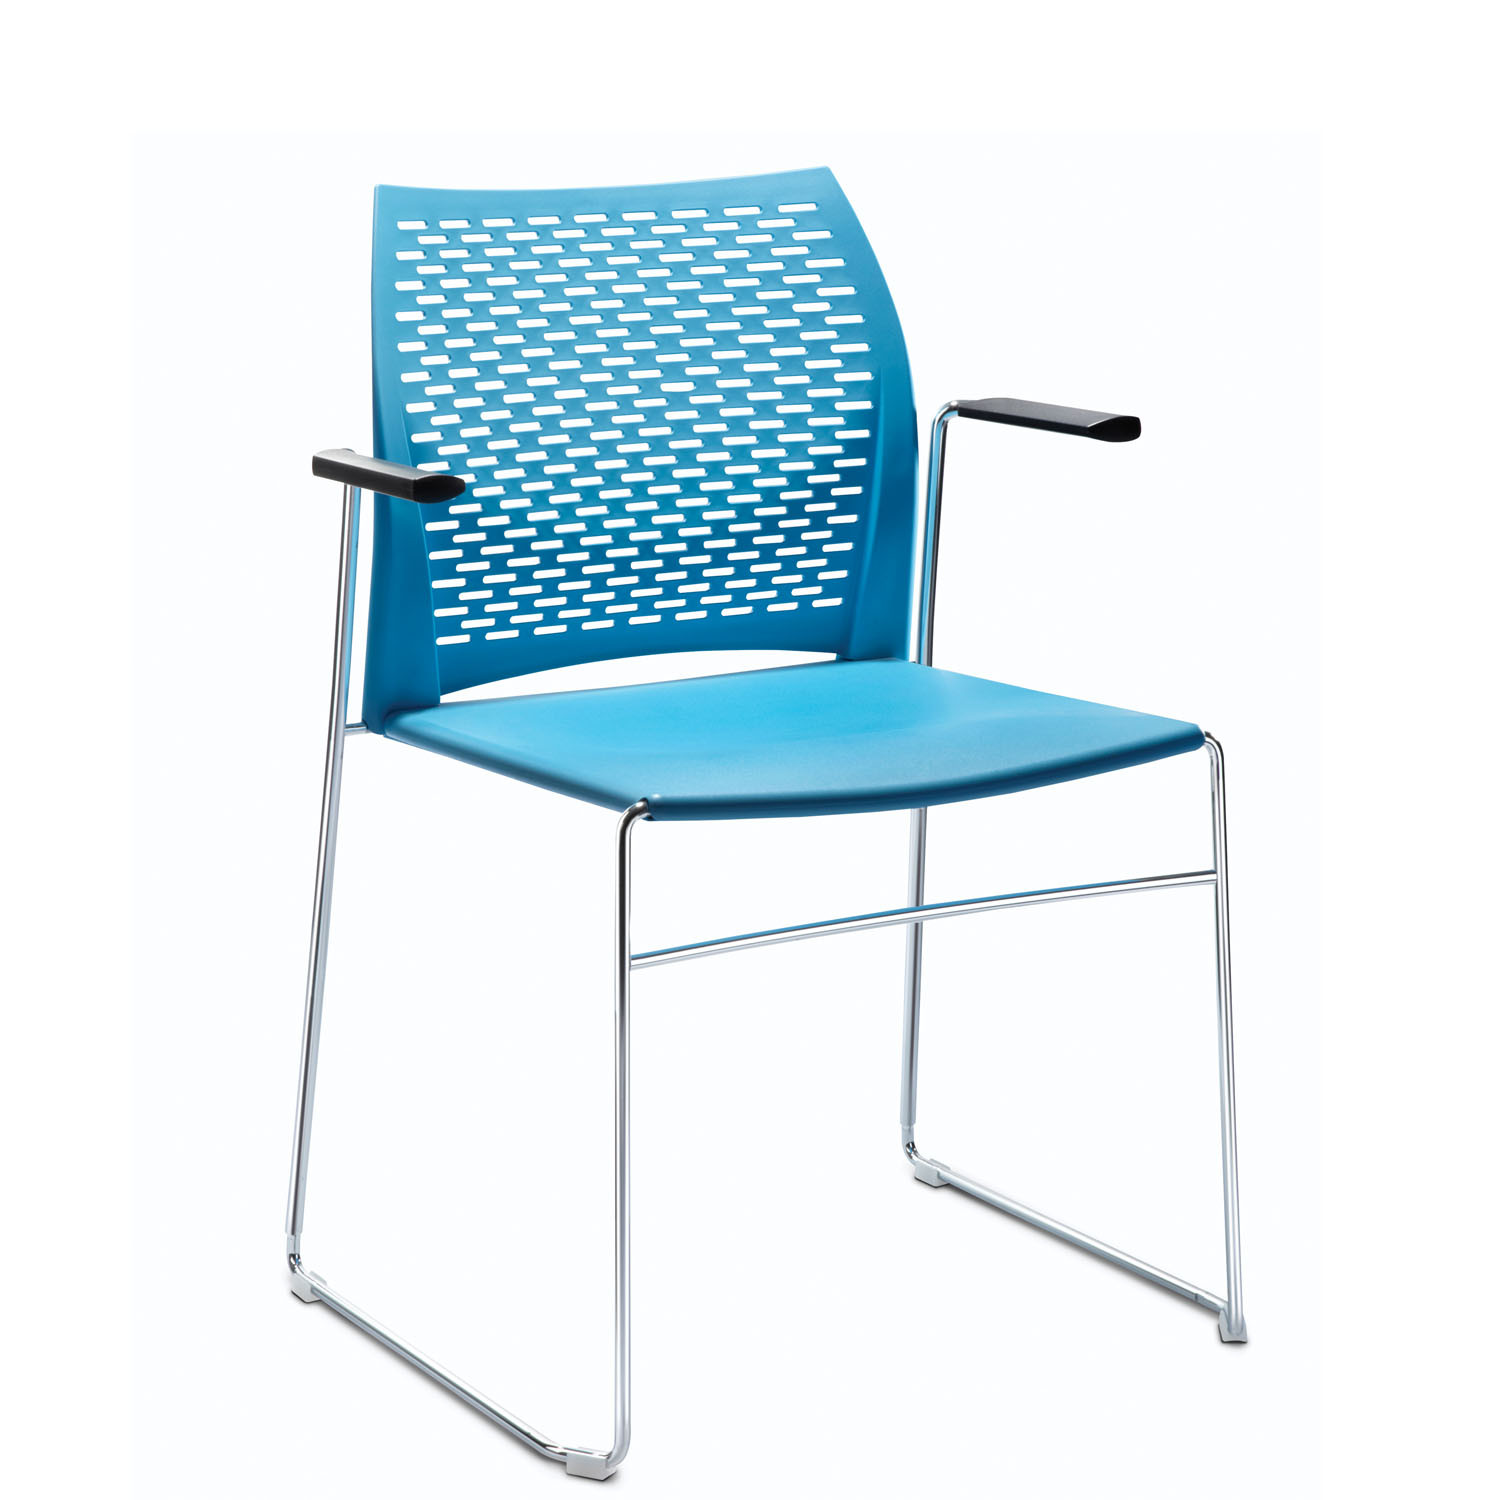 Xpresso 3 Stacking Chairs